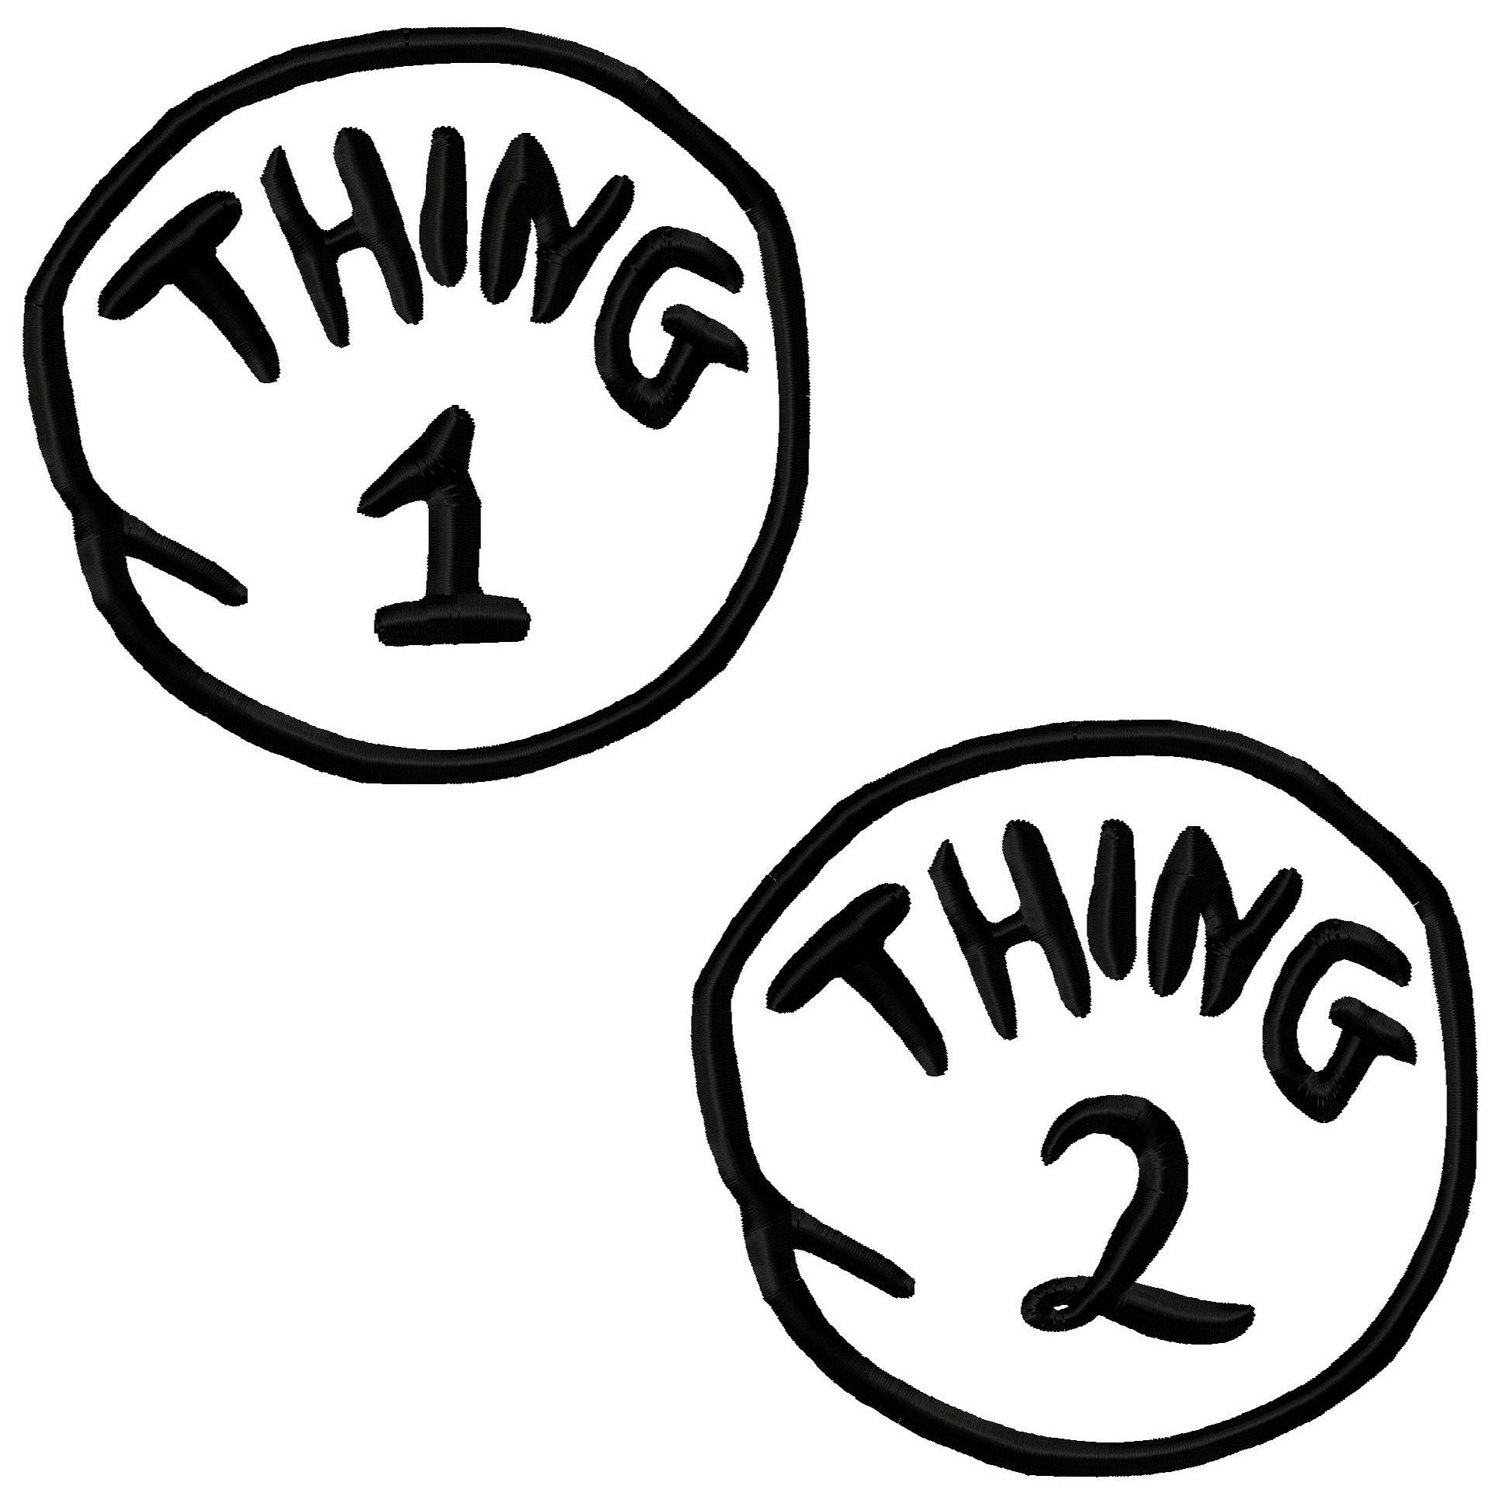 picture regarding Thing 1 and Thing 2 Printable Cutouts titled Pics Of Detail 1 And Detail 2 Totally free obtain simplest